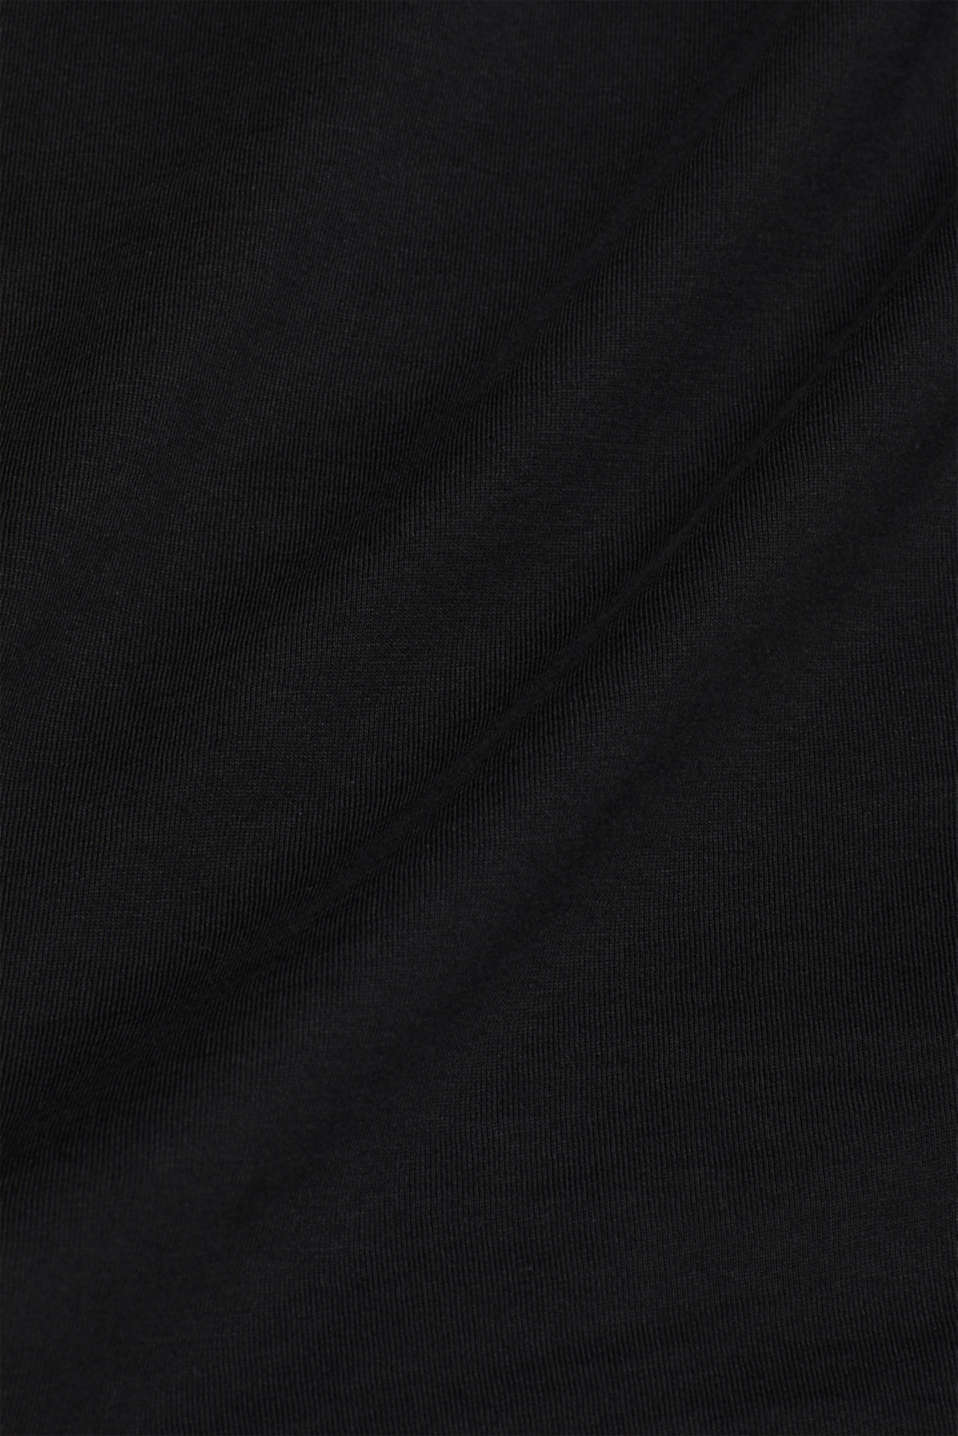 Jersey shirt made of organic cotton, BLACK, detail image number 0